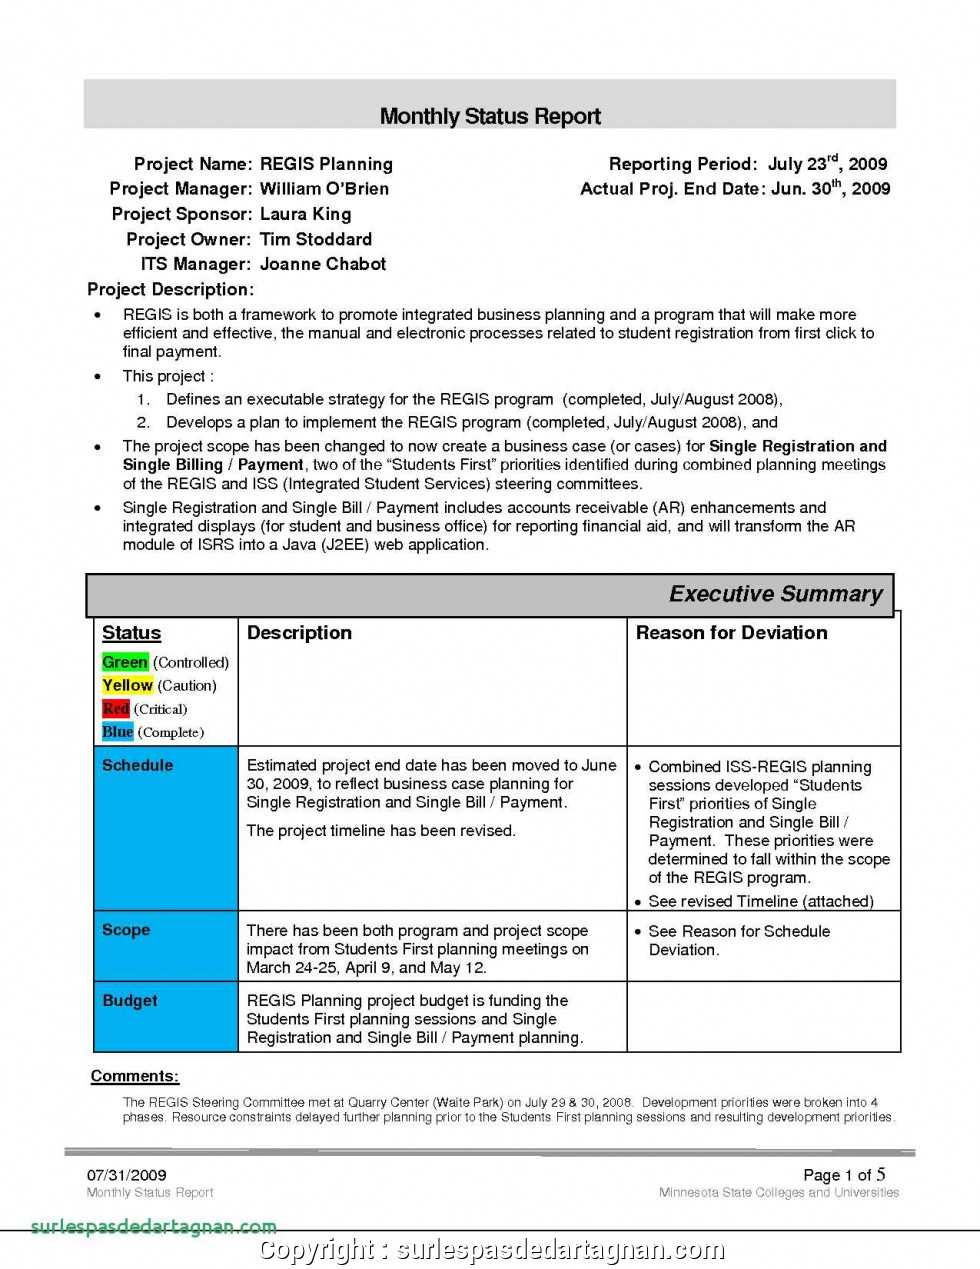 Sales Manager Monthly Report Templates – Atlantaauctionco Regarding Sales Manager Monthly Report Templates